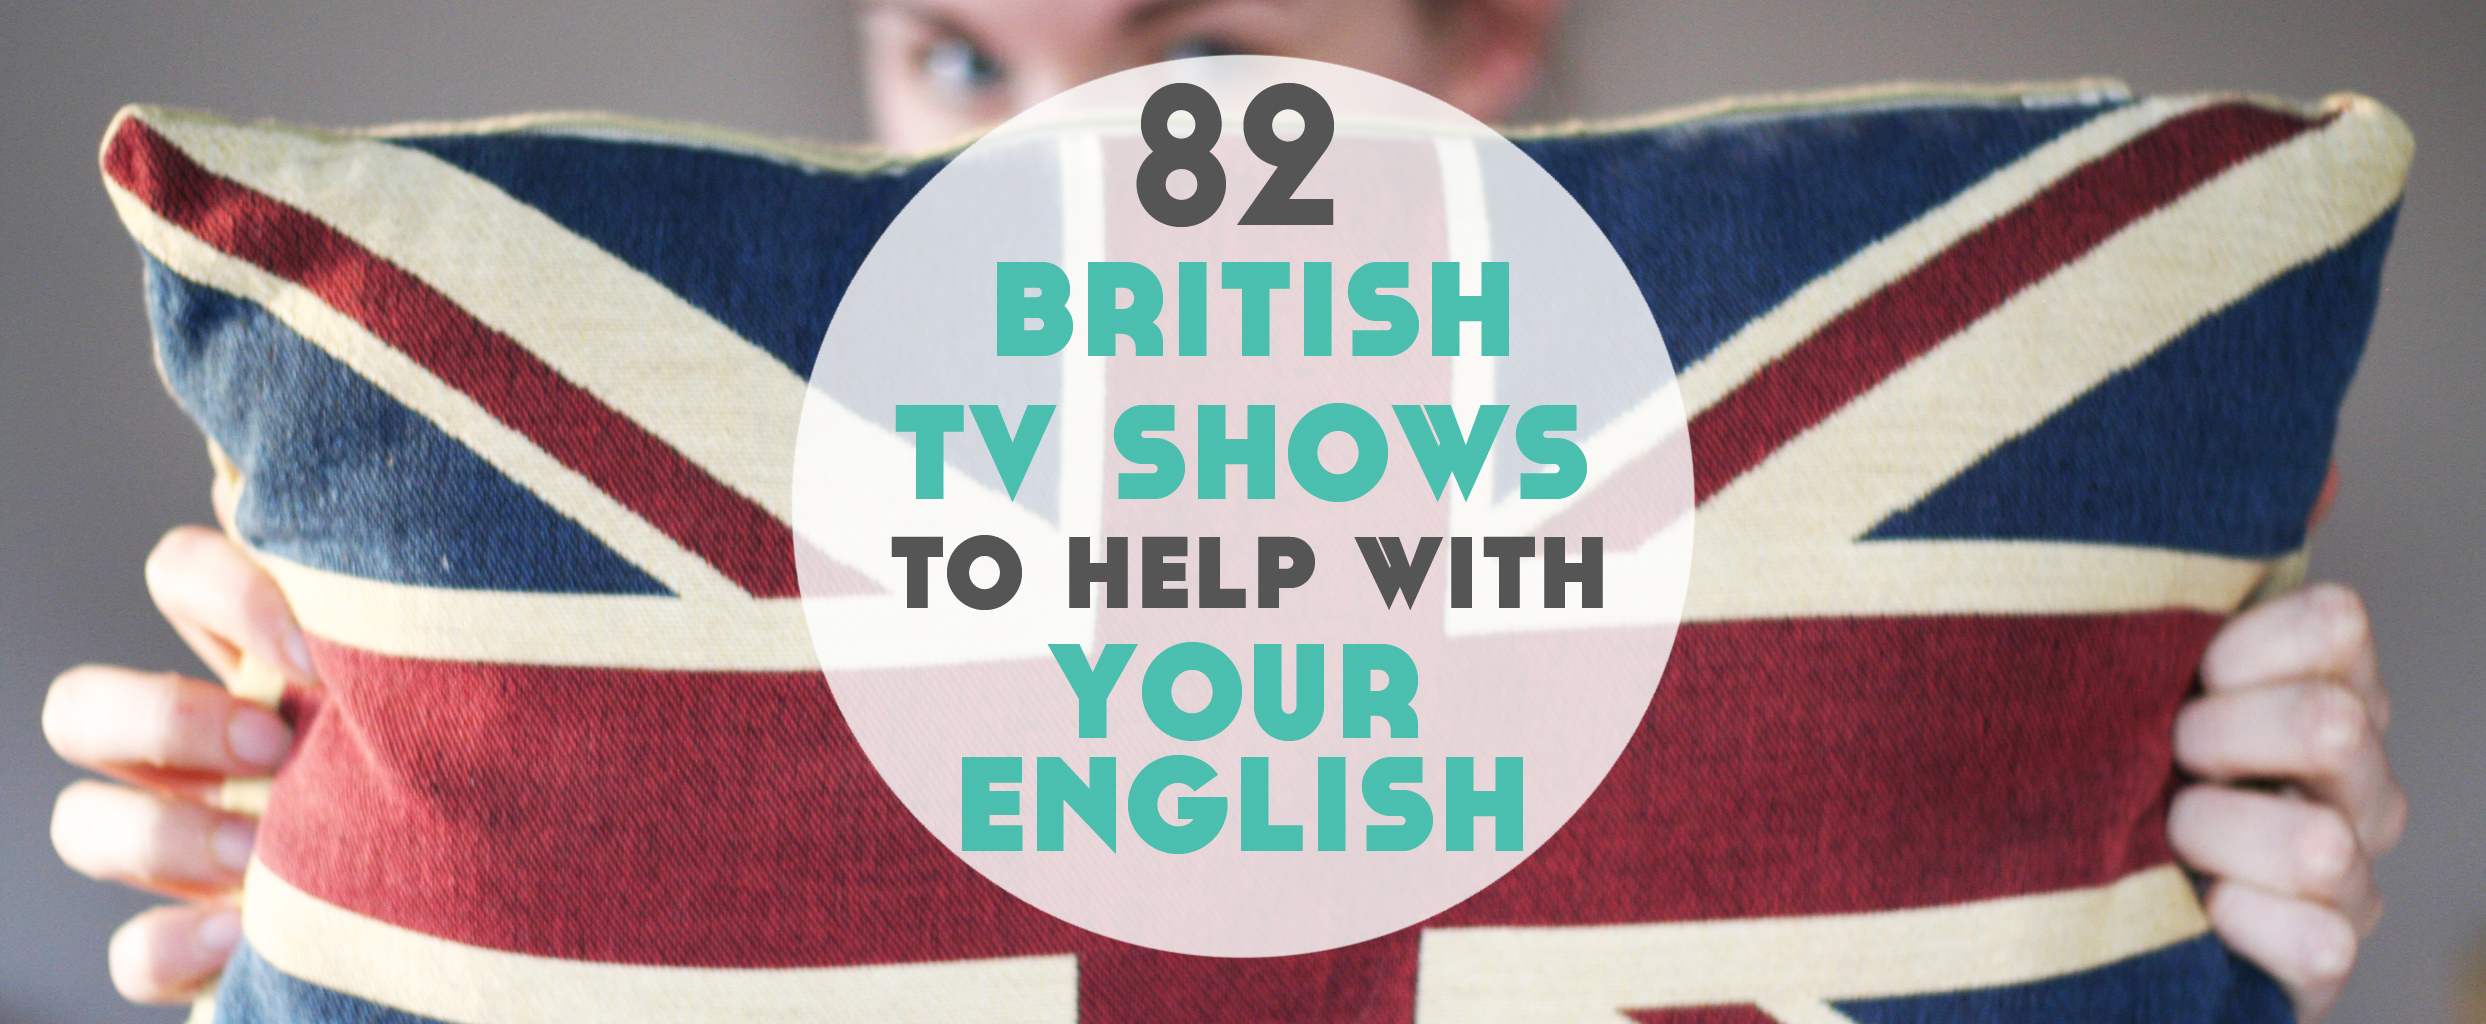 82 British TV Shows to Help with Your English - Lindsay Does